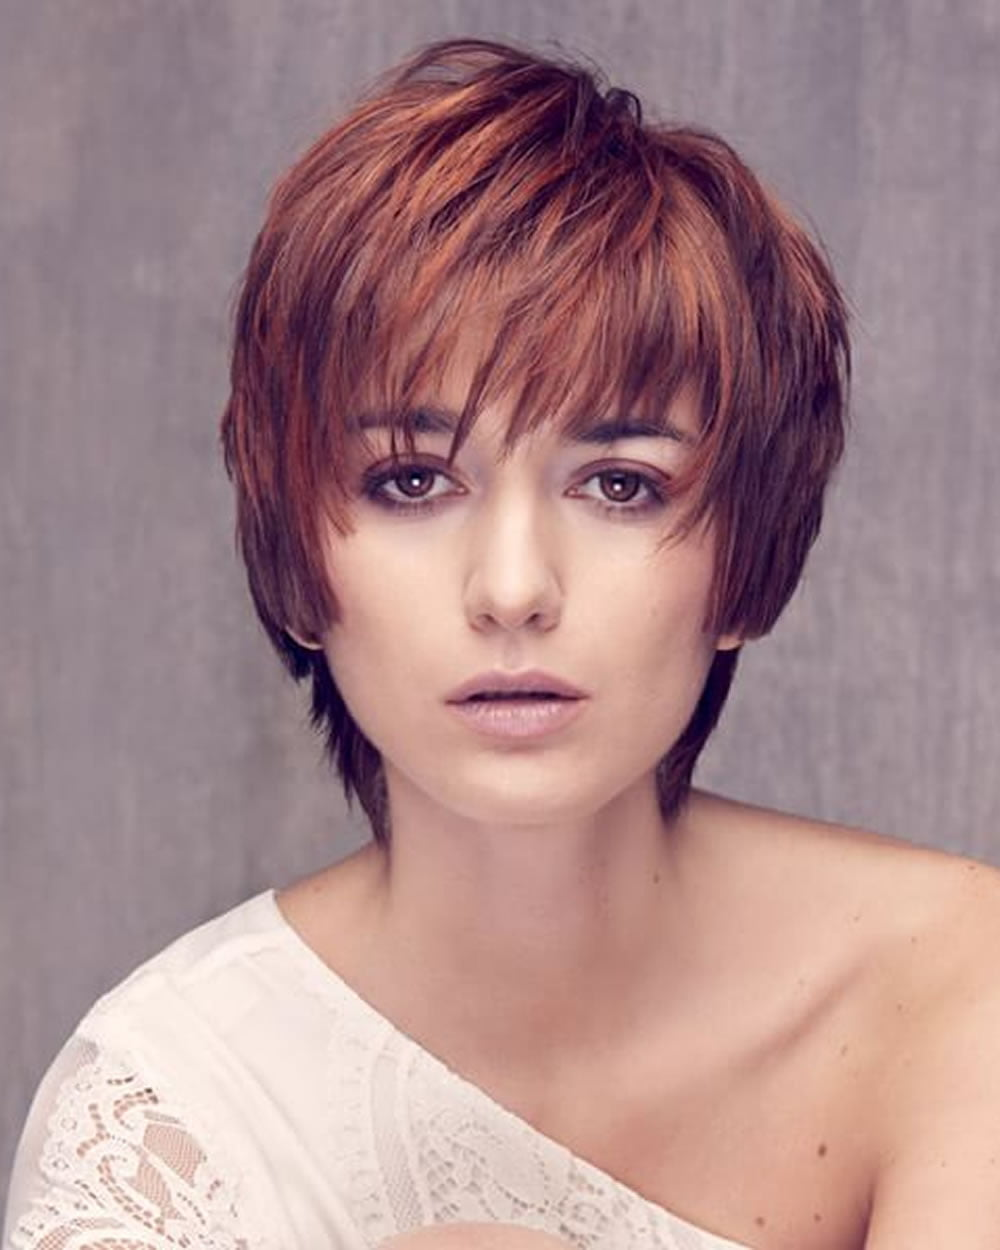 Short Hair Models 2018 Newest Short Haircut Designs For 2018